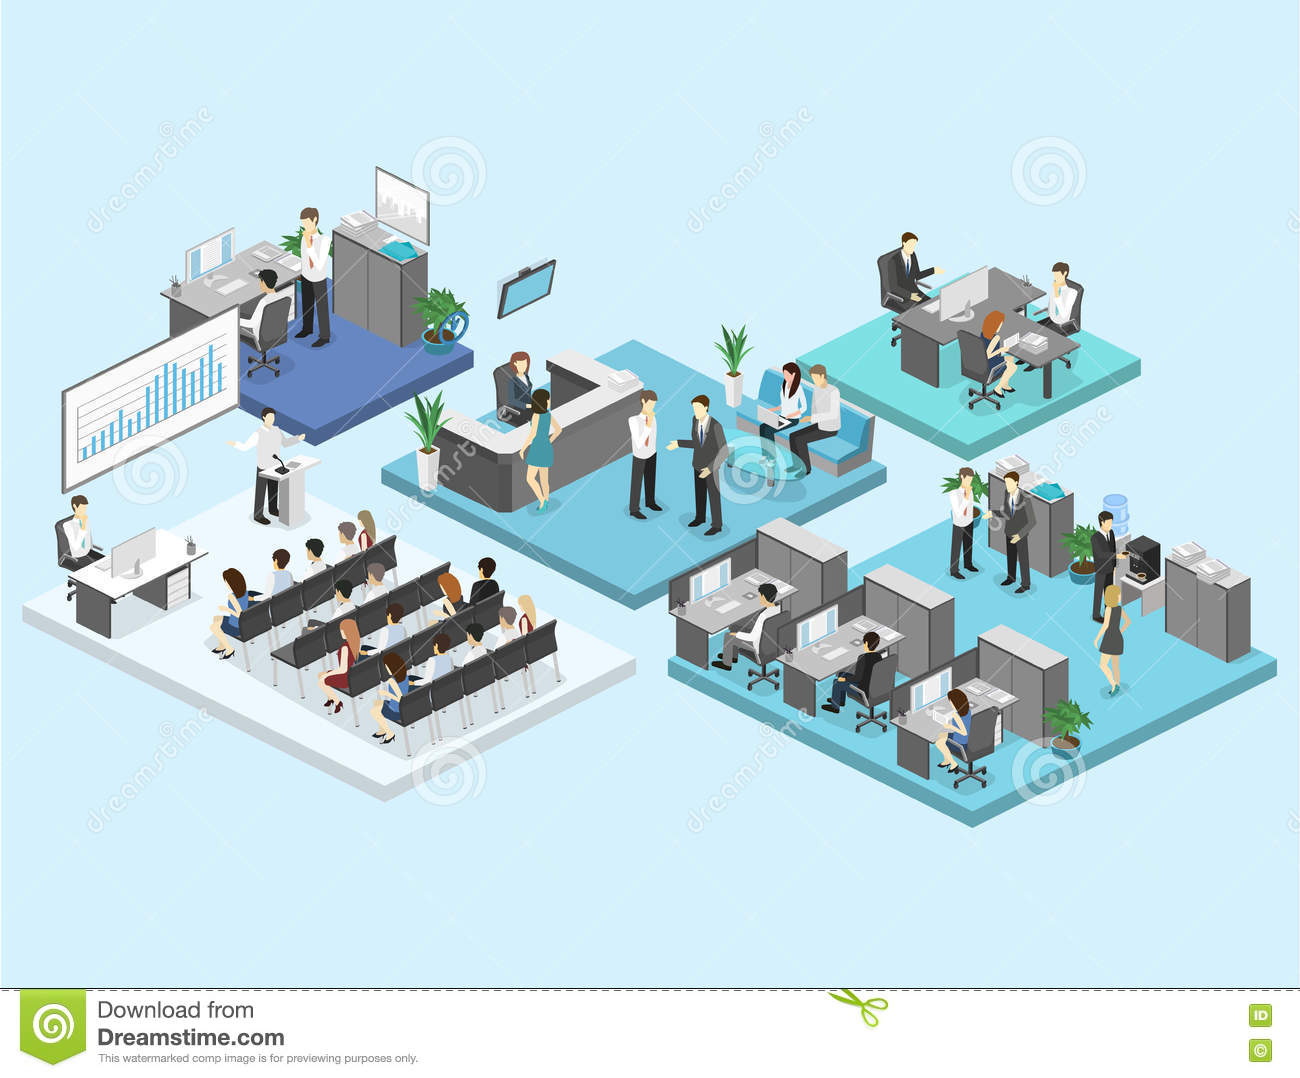 Isometric flat 3d abstract office floor interior departments concept .